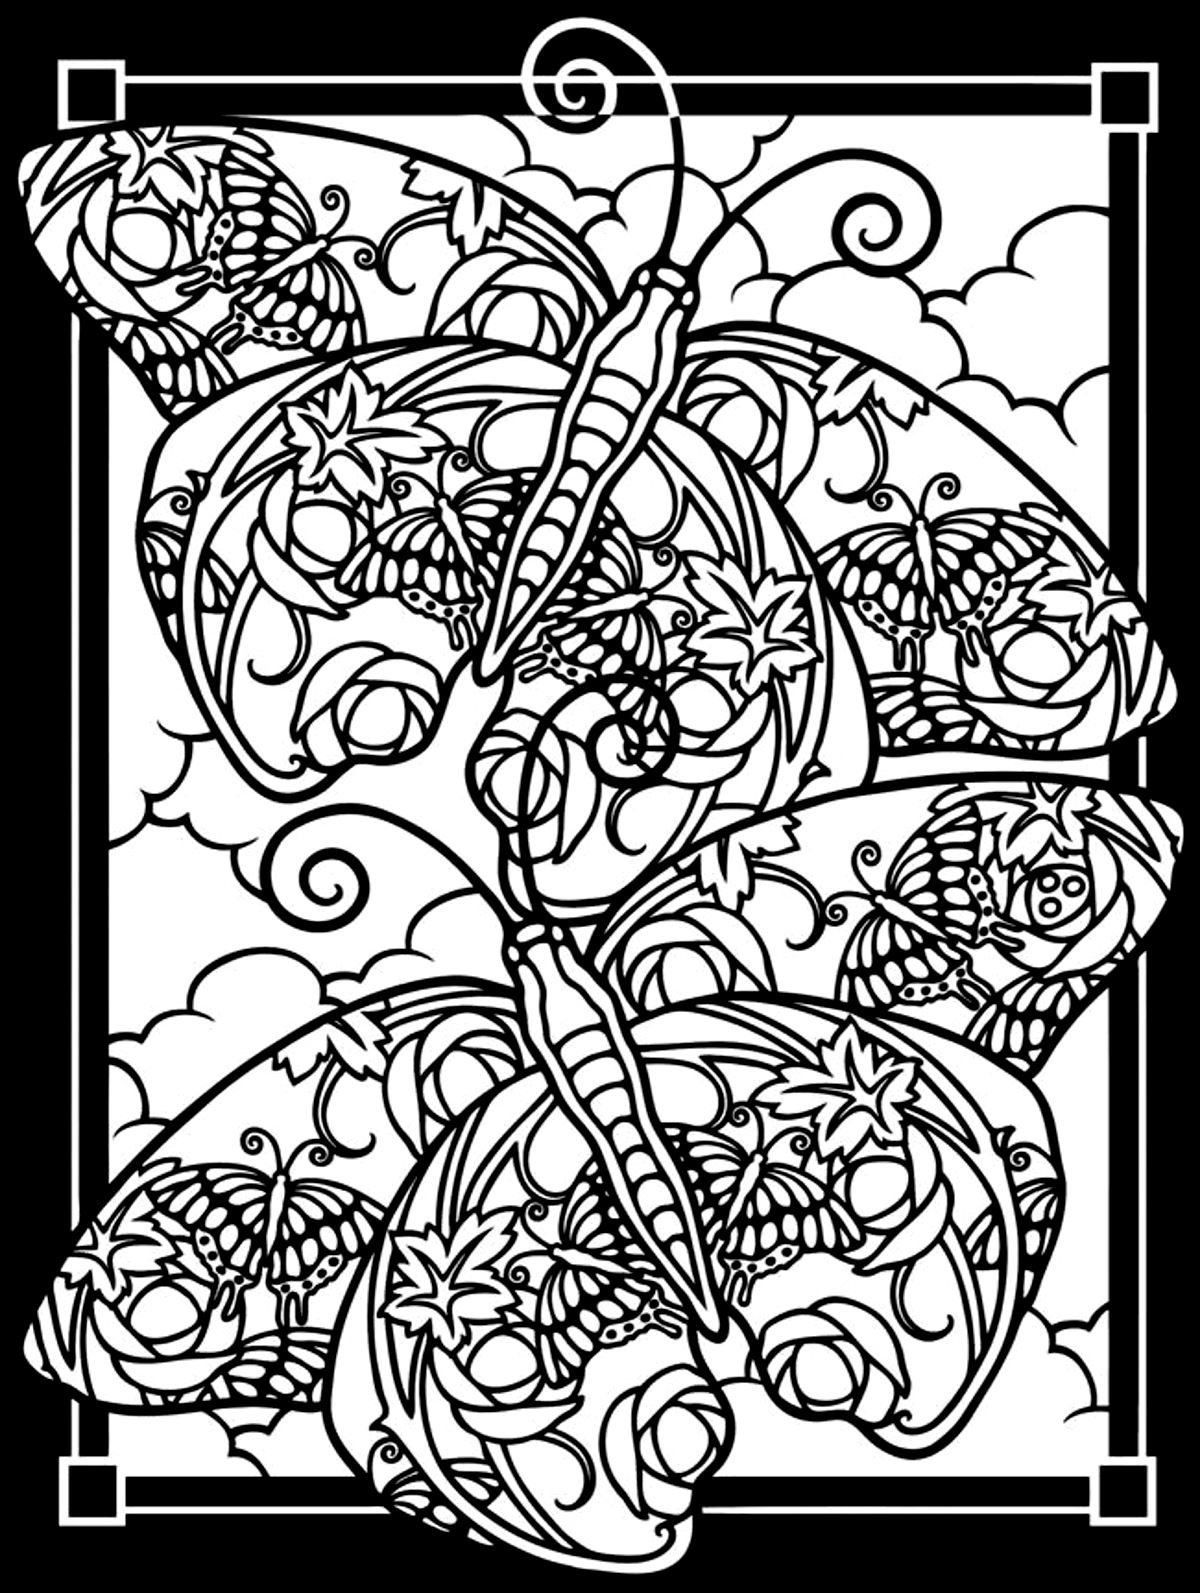 black and white coloring pages for adults art black and white and girl image grayscale coloring coloring adults white and pages black for